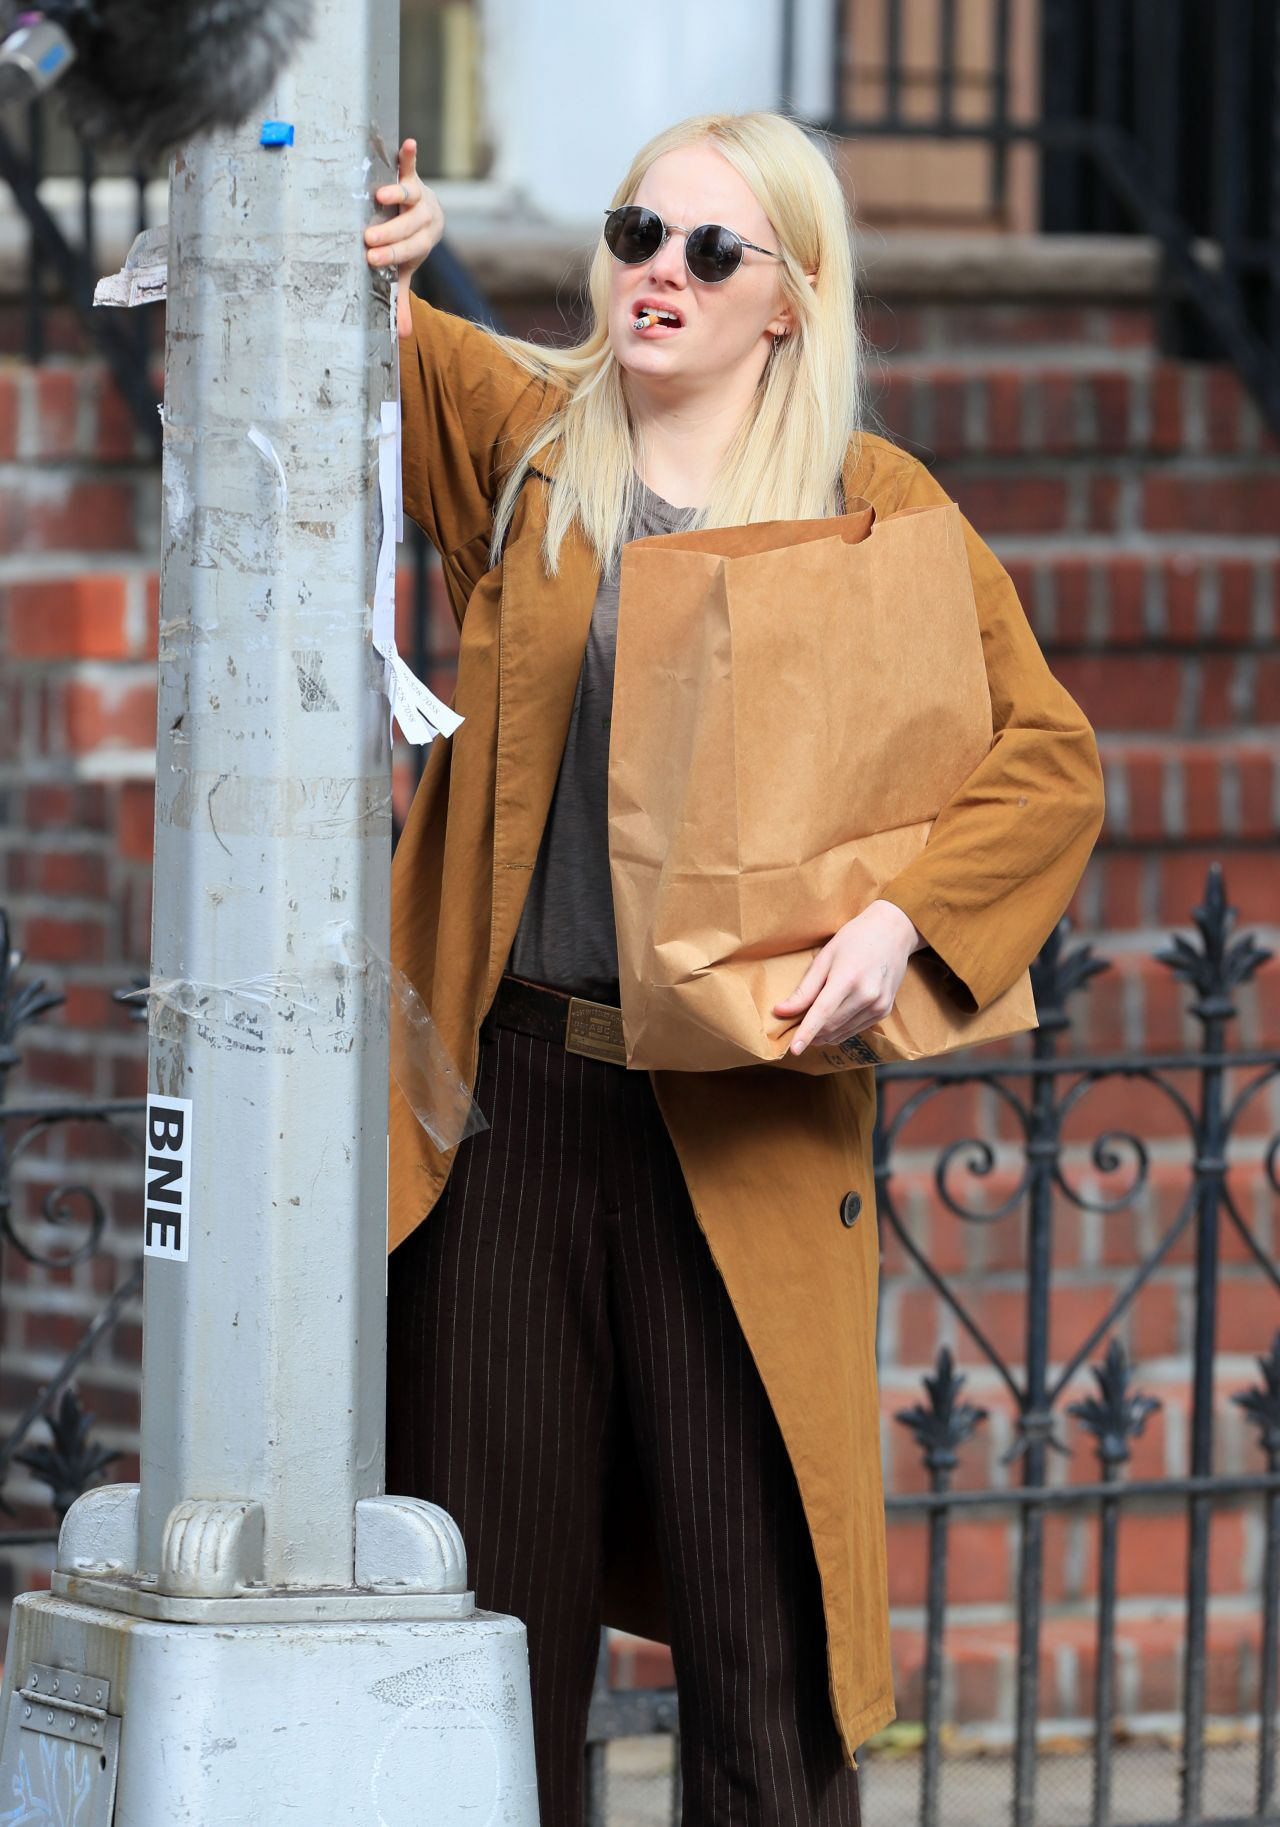 Emma stone shooting scenes on the set of maniac in long island nyc